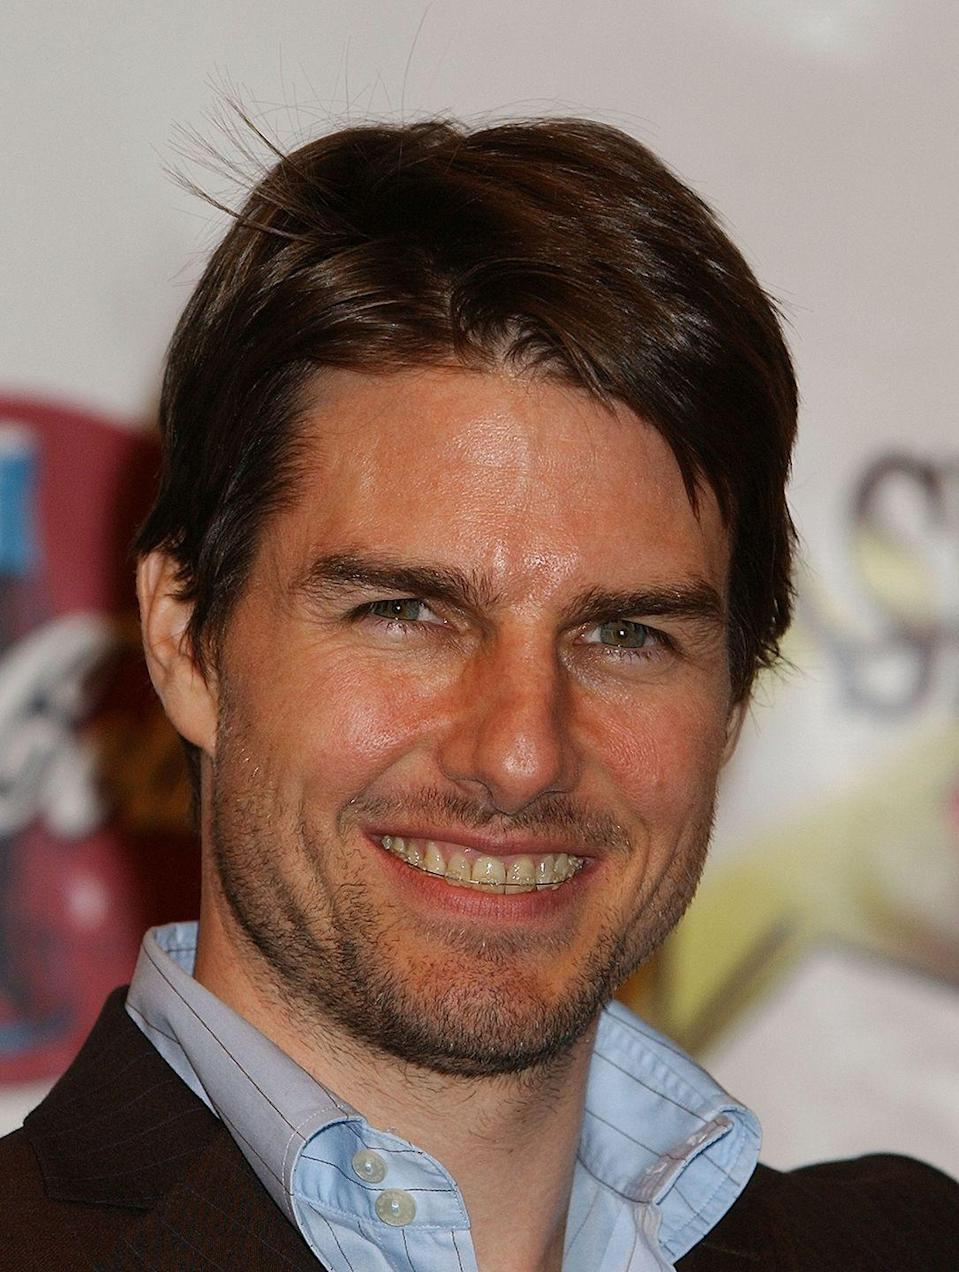 """<p>Yes, even Tom Cruise had dental wear. The actor known for his gorgeous smile went with <a href=""""https://www.elle.com/culture/g8107/celebrities-with-braces-faith-hill/?slide=4"""" rel=""""nofollow noopener"""" target=""""_blank"""" data-ylk=""""slk:nearly invisible retainers"""" class=""""link rapid-noclick-resp"""">nearly invisible retainers</a> and only wore them for a few months.</p>"""